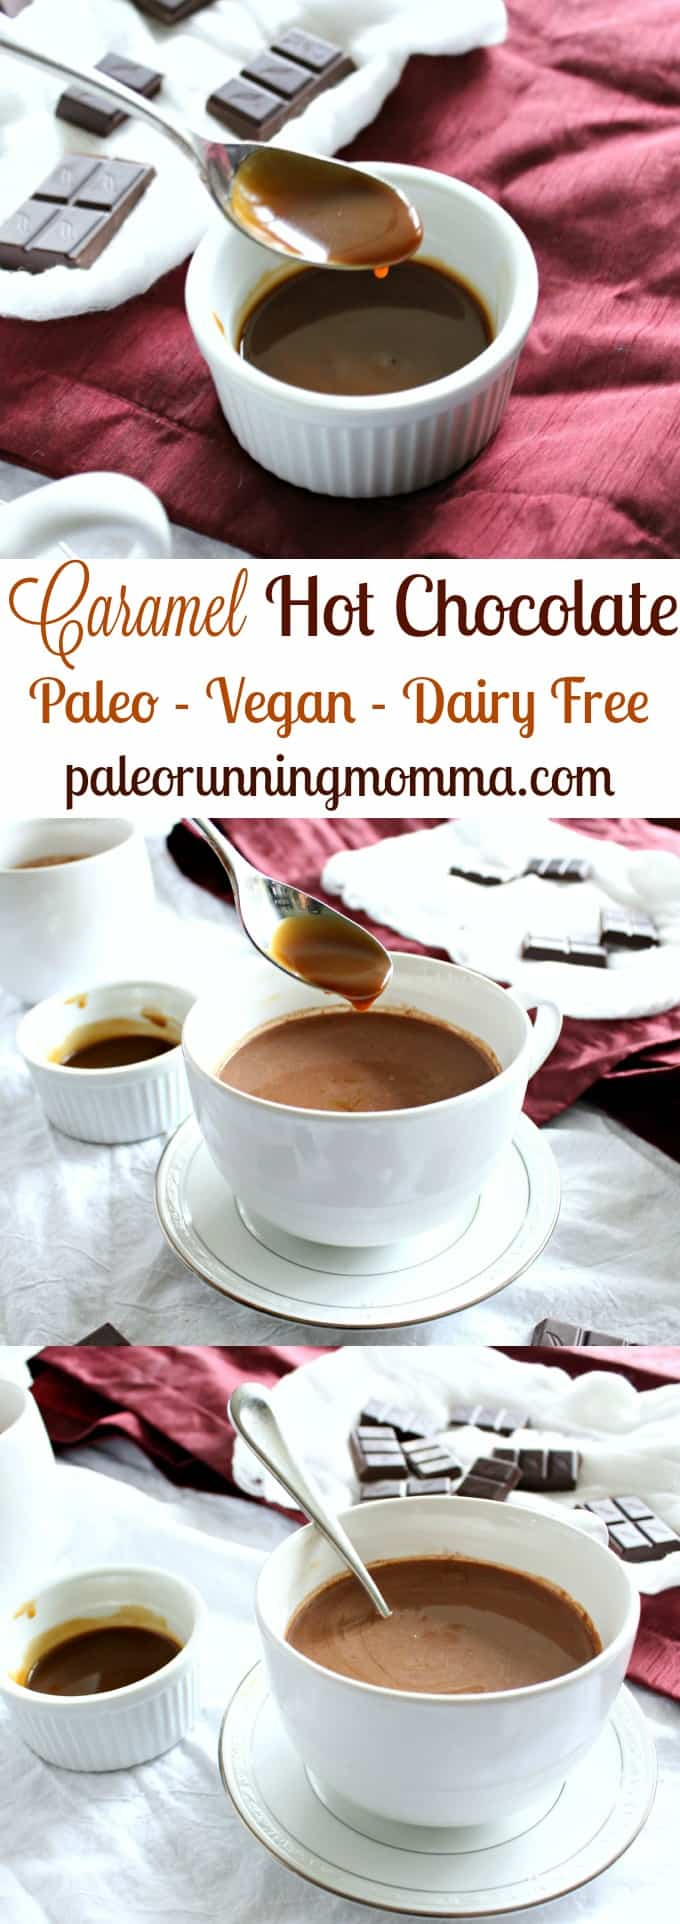 Caramel Hot Chocolate - Paleo, vegan, dairy free! Rich and creamy almond milk hot chocolate swirled with easy dairy free caramel sauce